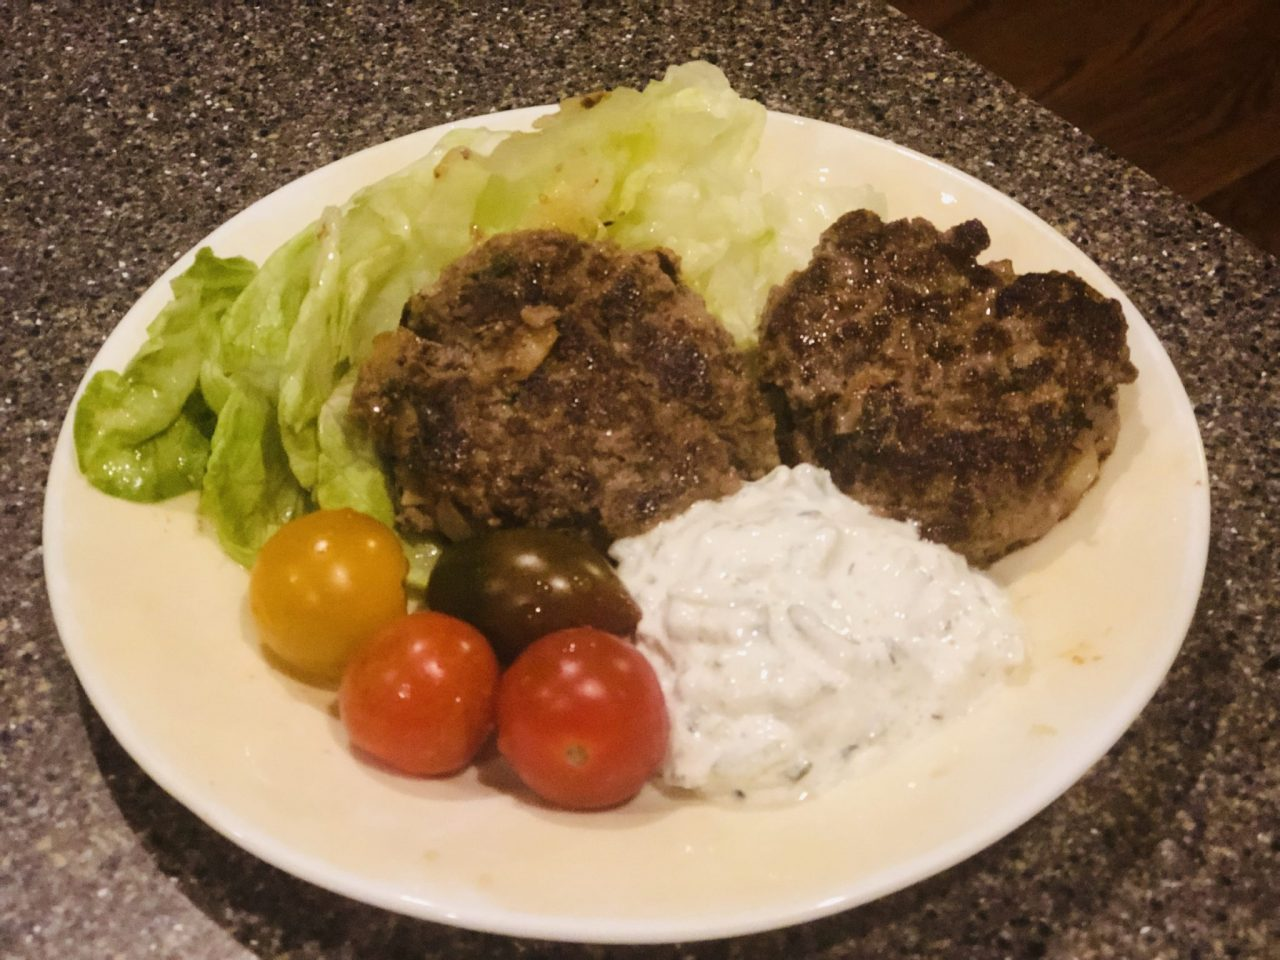 Frikadelle or German Meat Patties